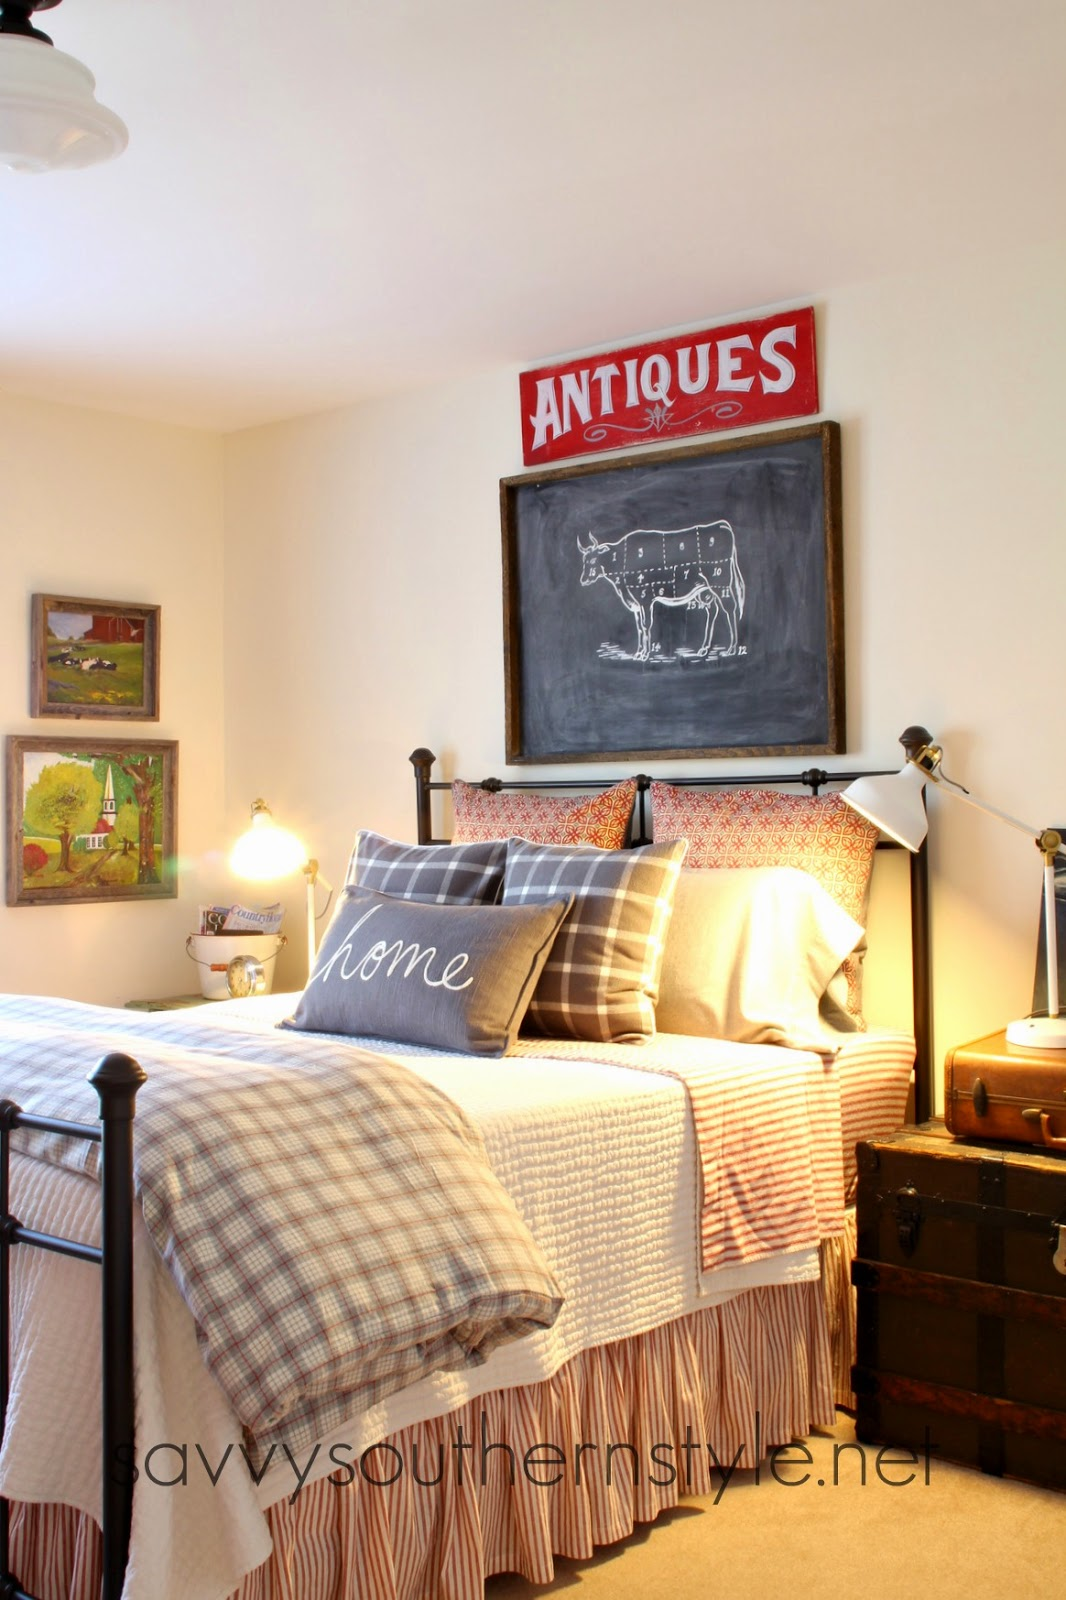 Fashion Inspired Guest Room: Savvy Southern Style : Ikea Ranarp Lamps In The Guestroom